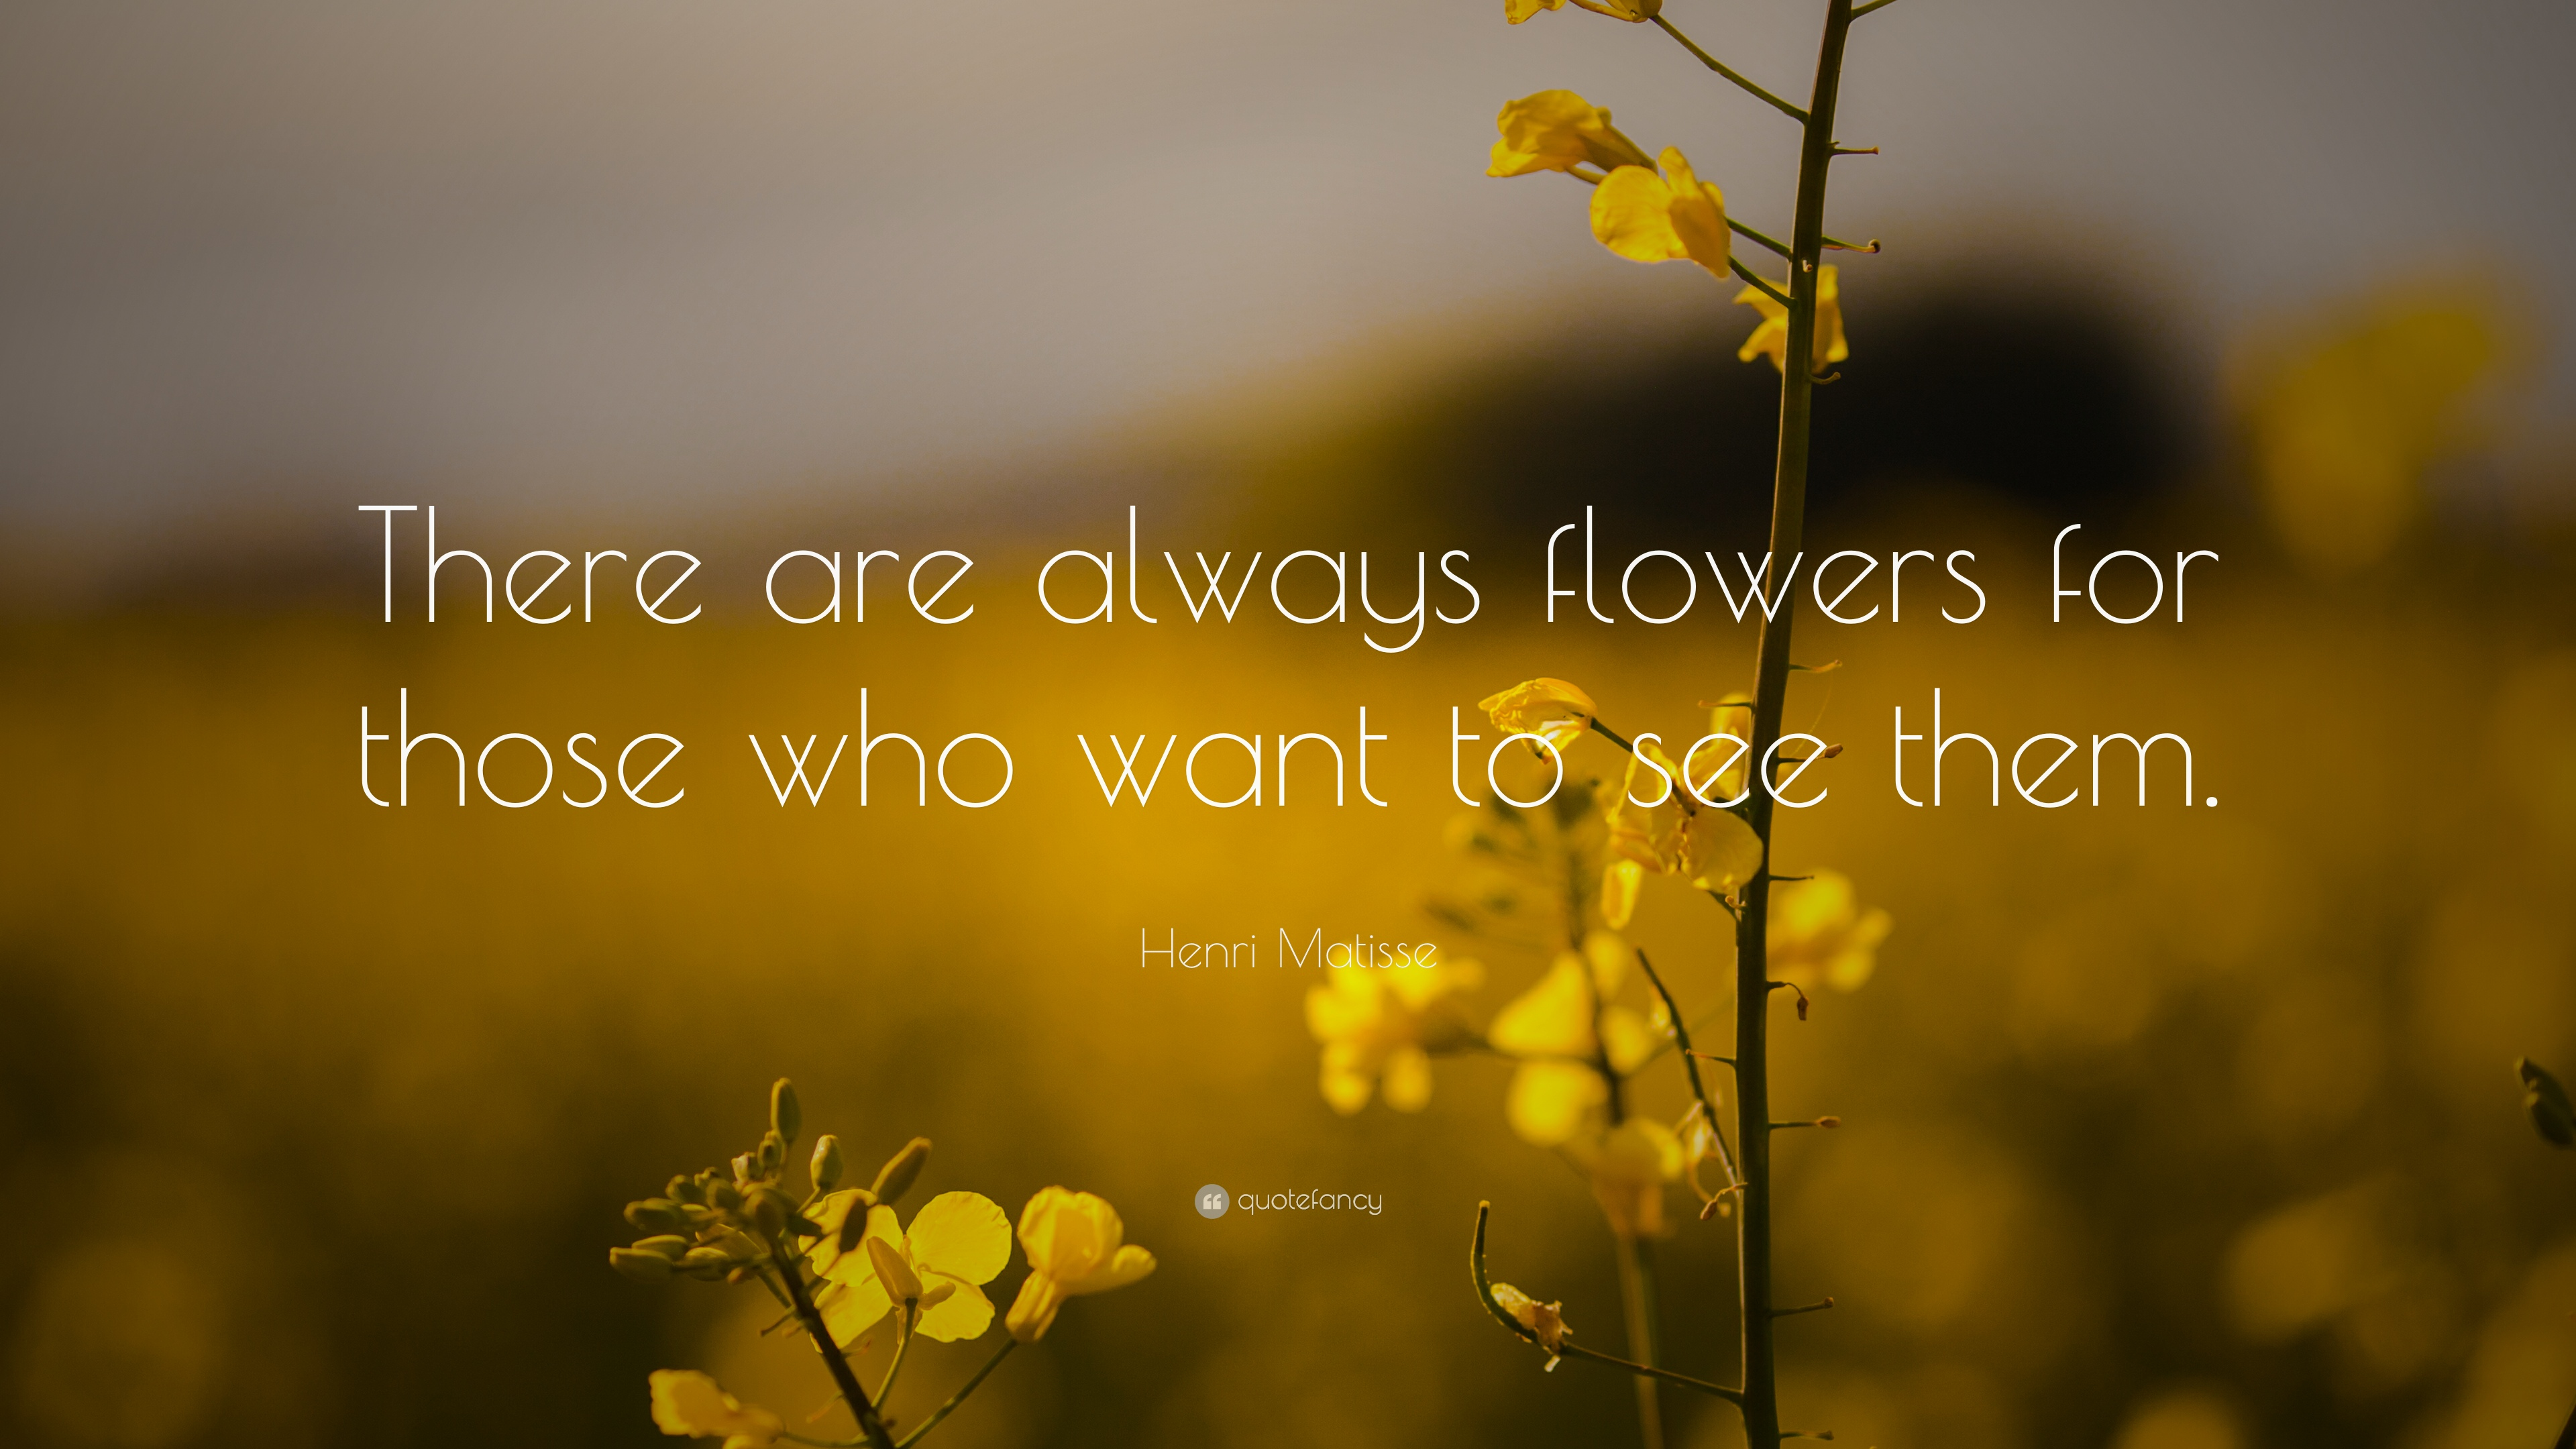 Positive Quotes There Are Always Flowers For Those Who Want To See Them